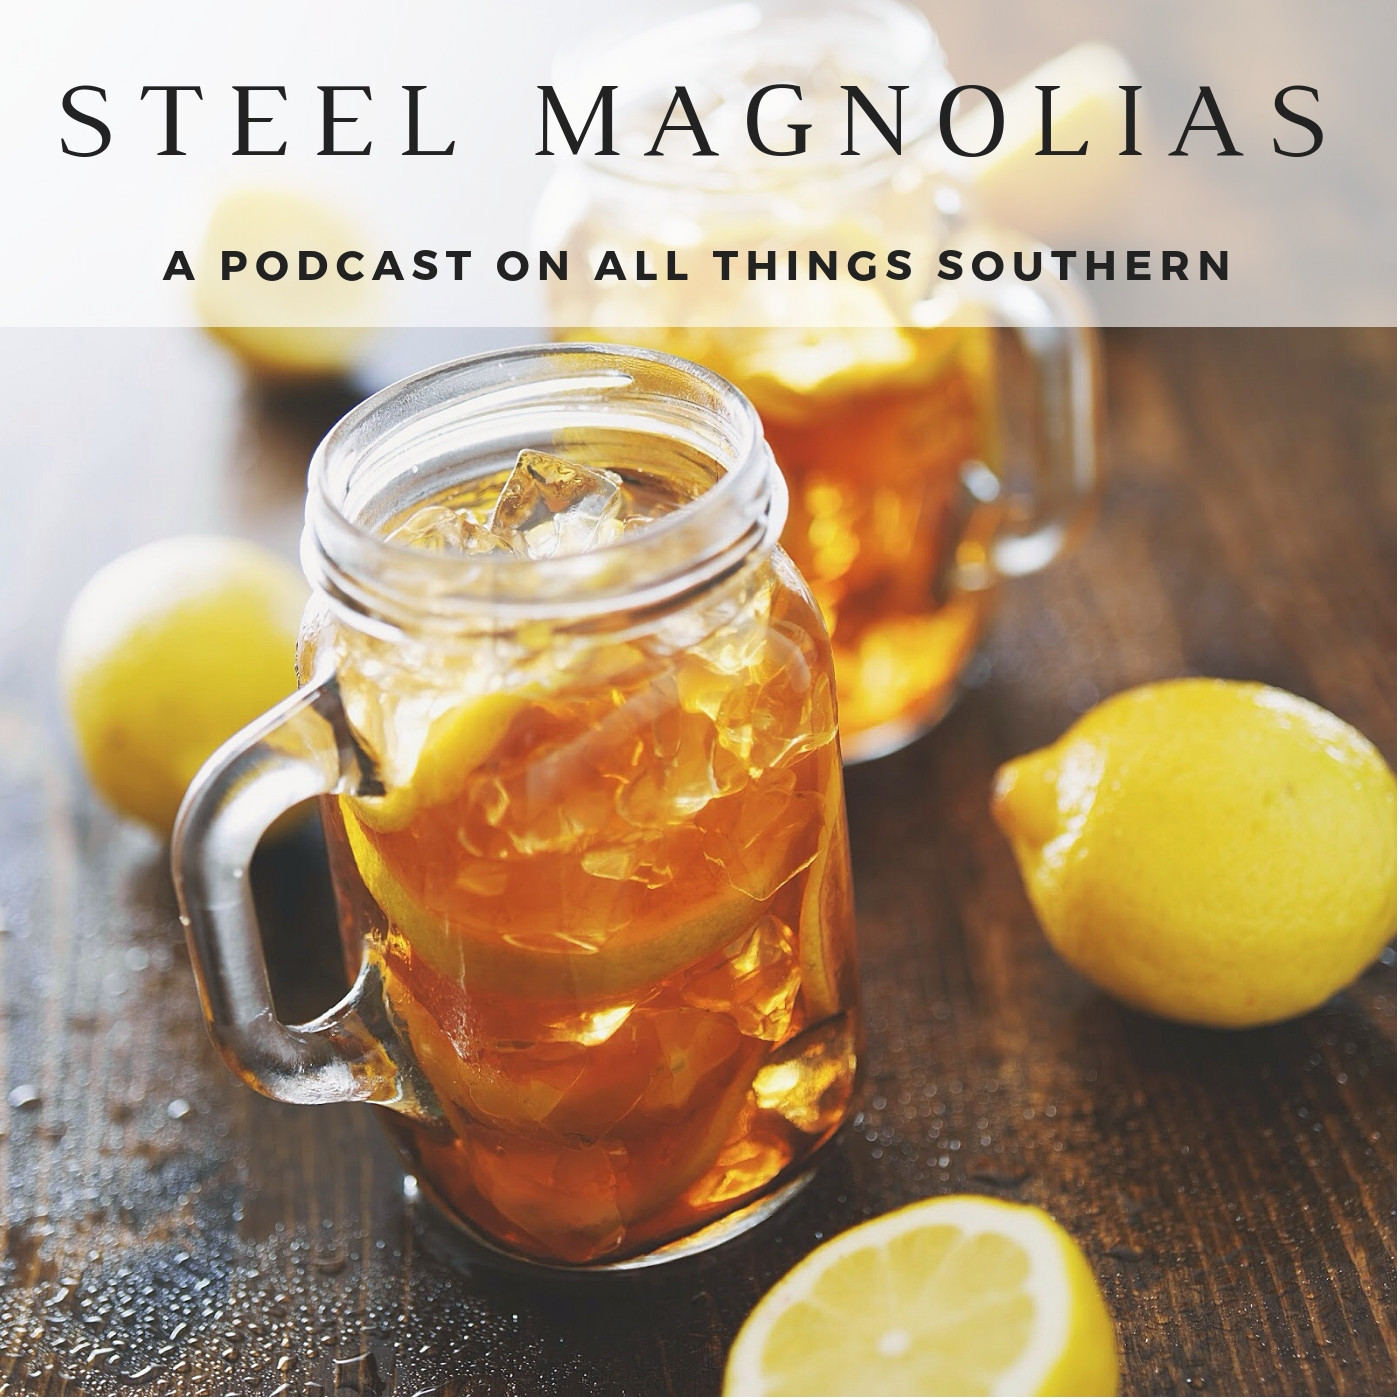 Steel Magnolias – Holding on to the good of The South